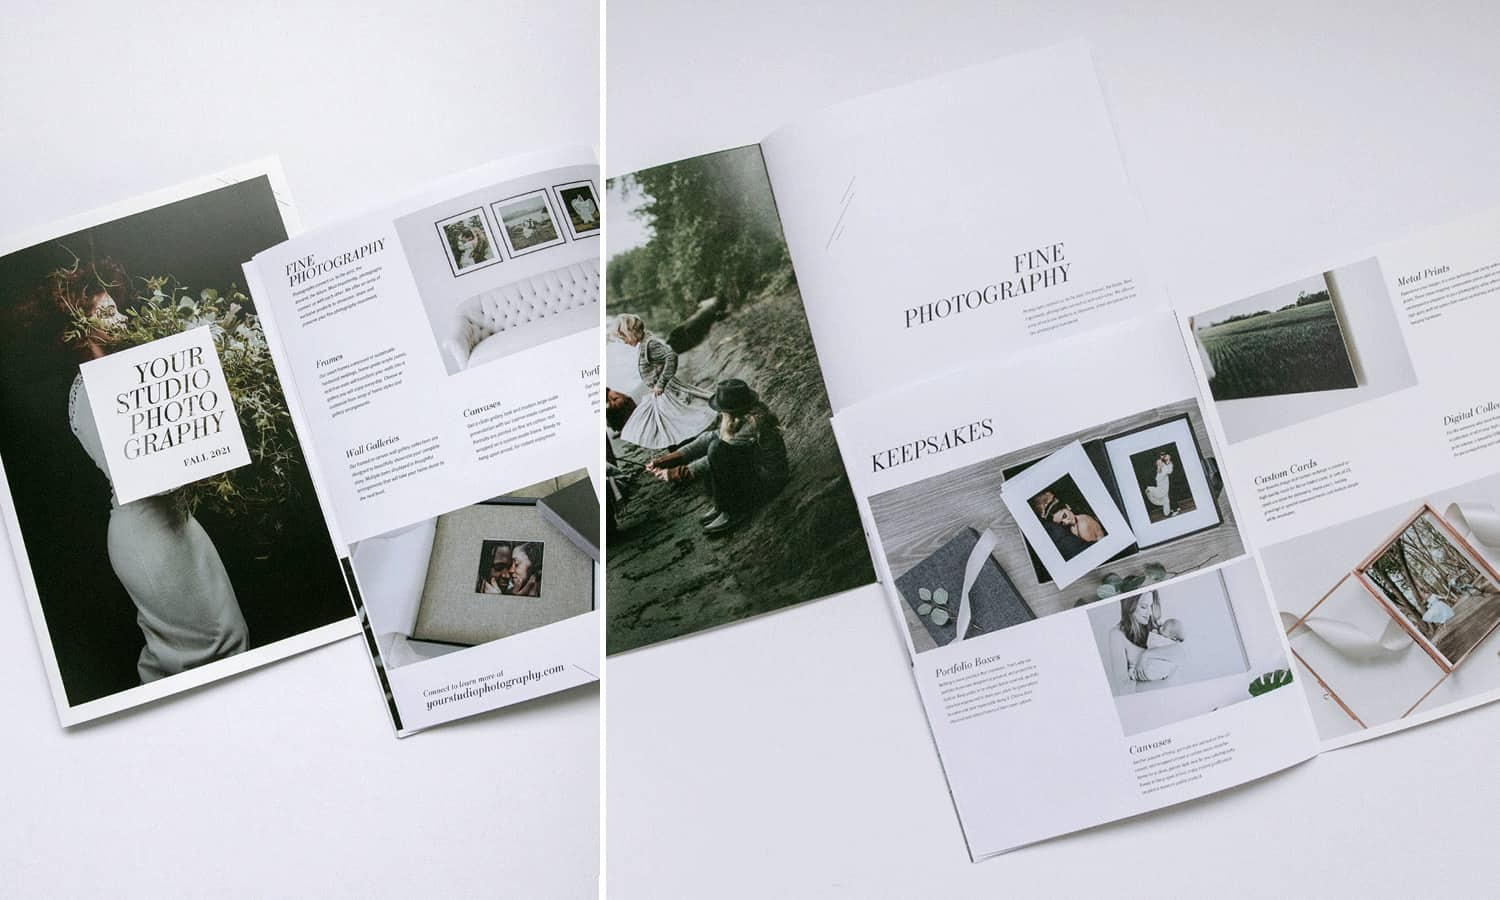 The Lookbook photography marketing template by Design Aglow